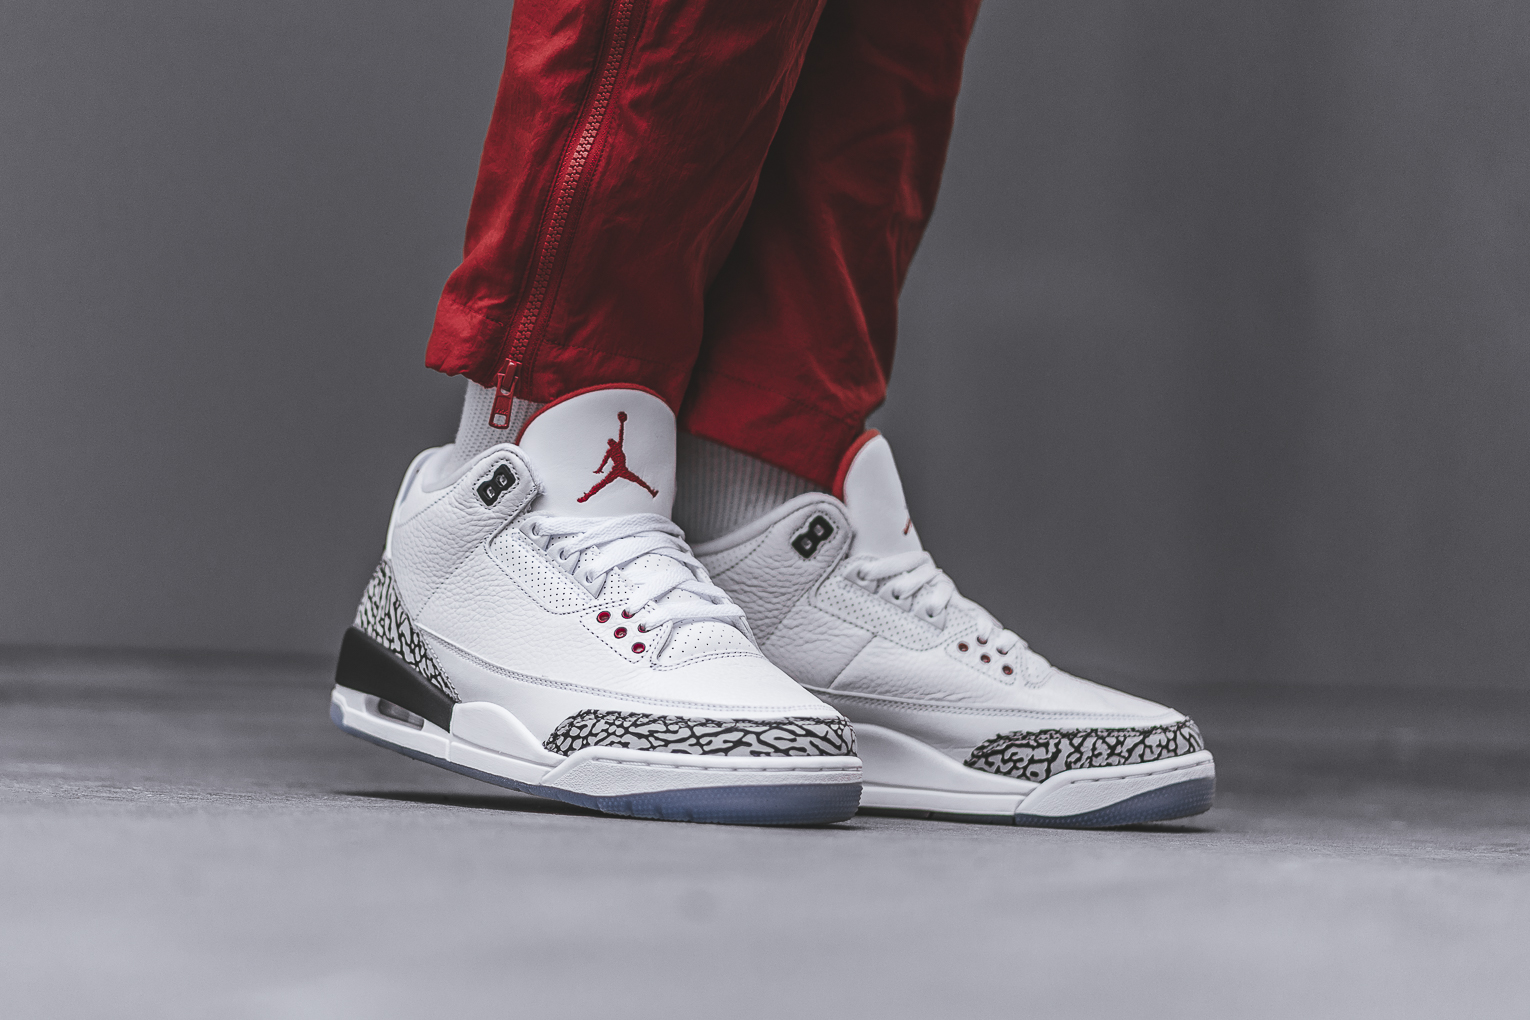 4307ee338c1ffa Who s Ready To Take Flight To Score The Air Jordan 3  Free Throw Line   -  MASSES